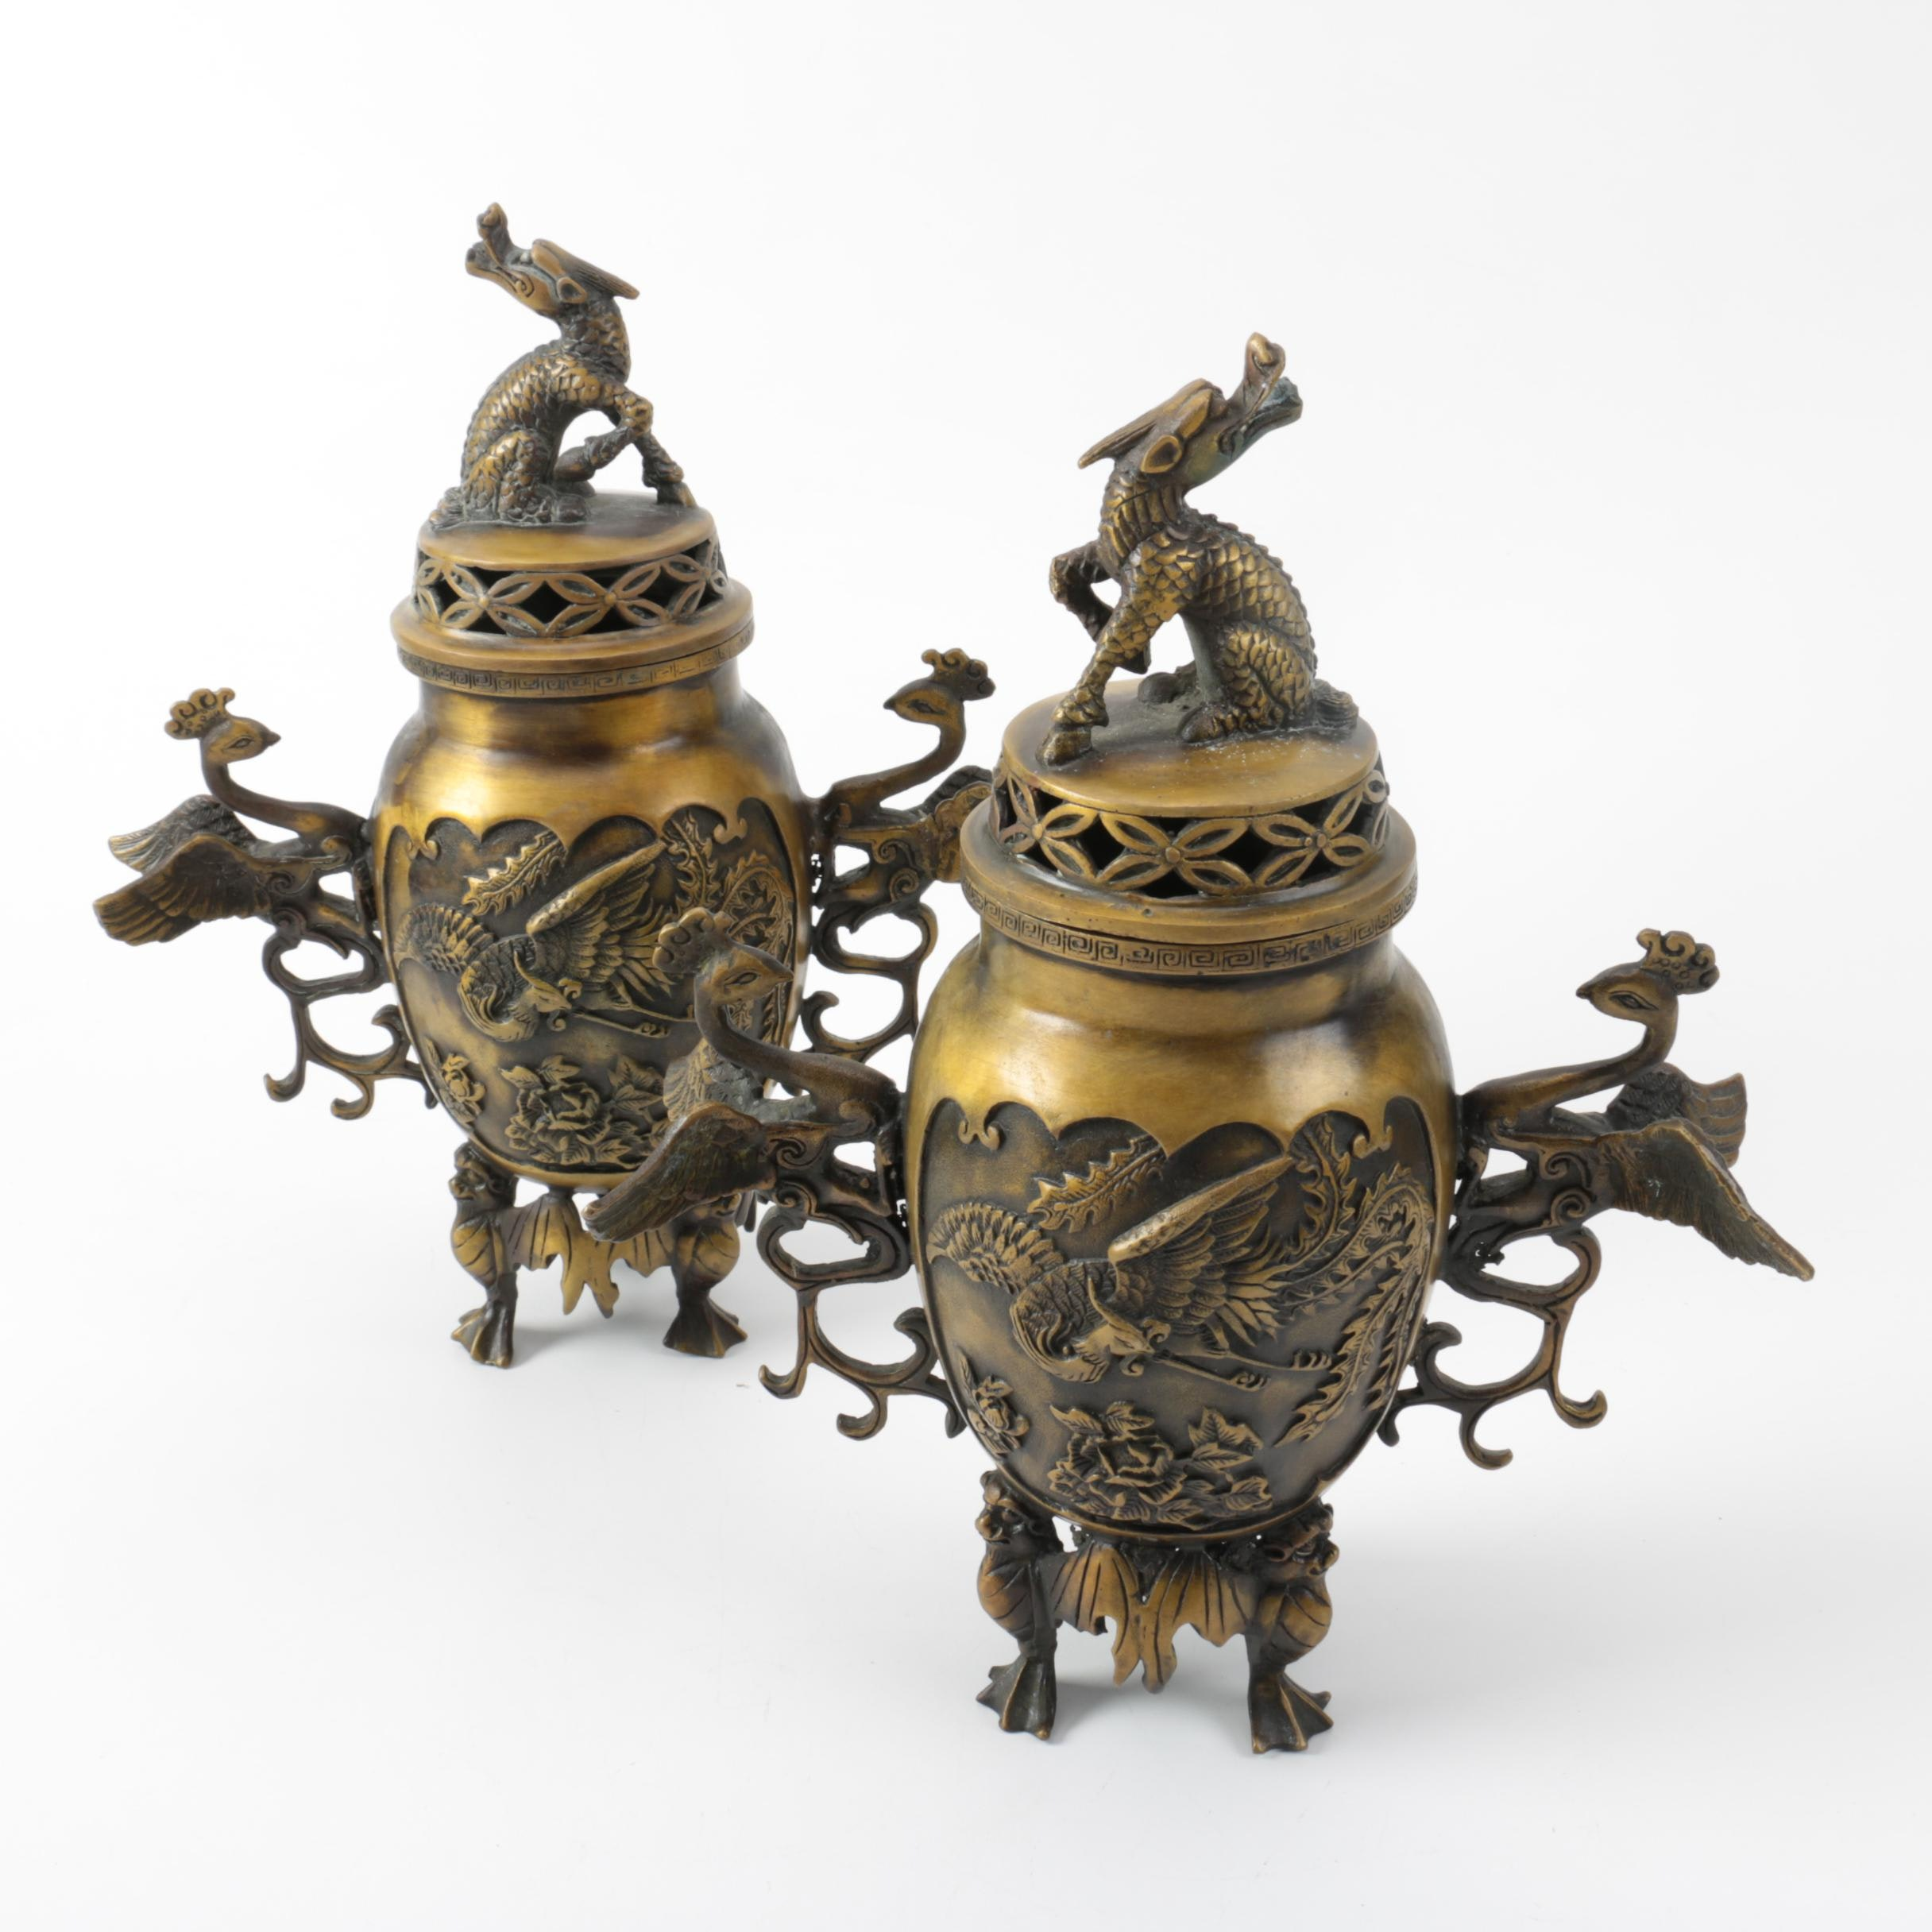 Pair of Chinese Bronze Censers in a Dragon and Phoenix Motif